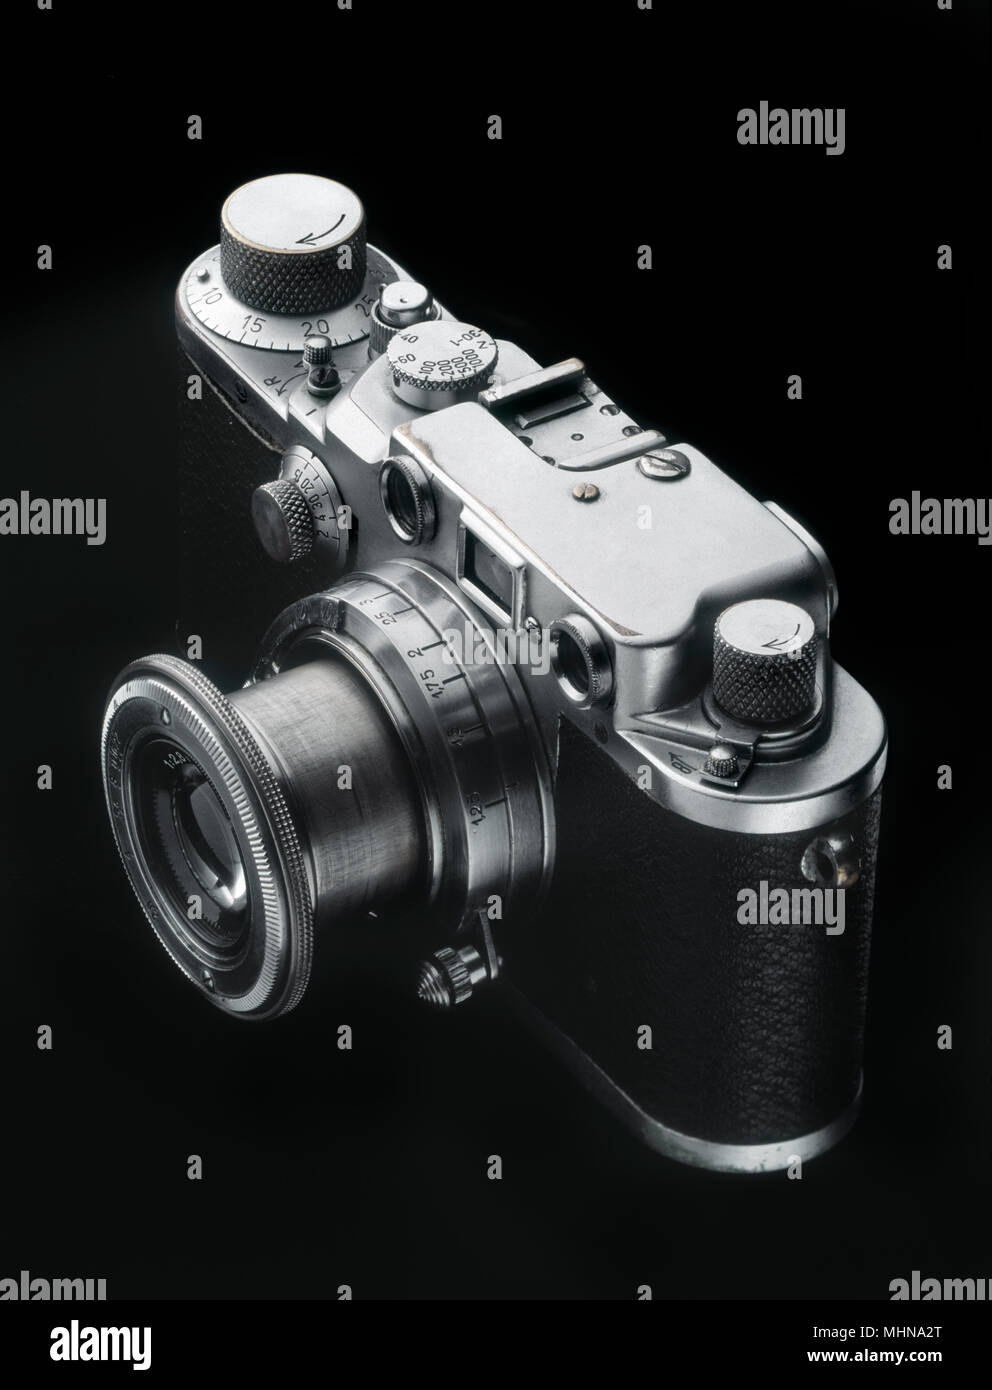 Old rangefinder camera from the forties - Stock Image